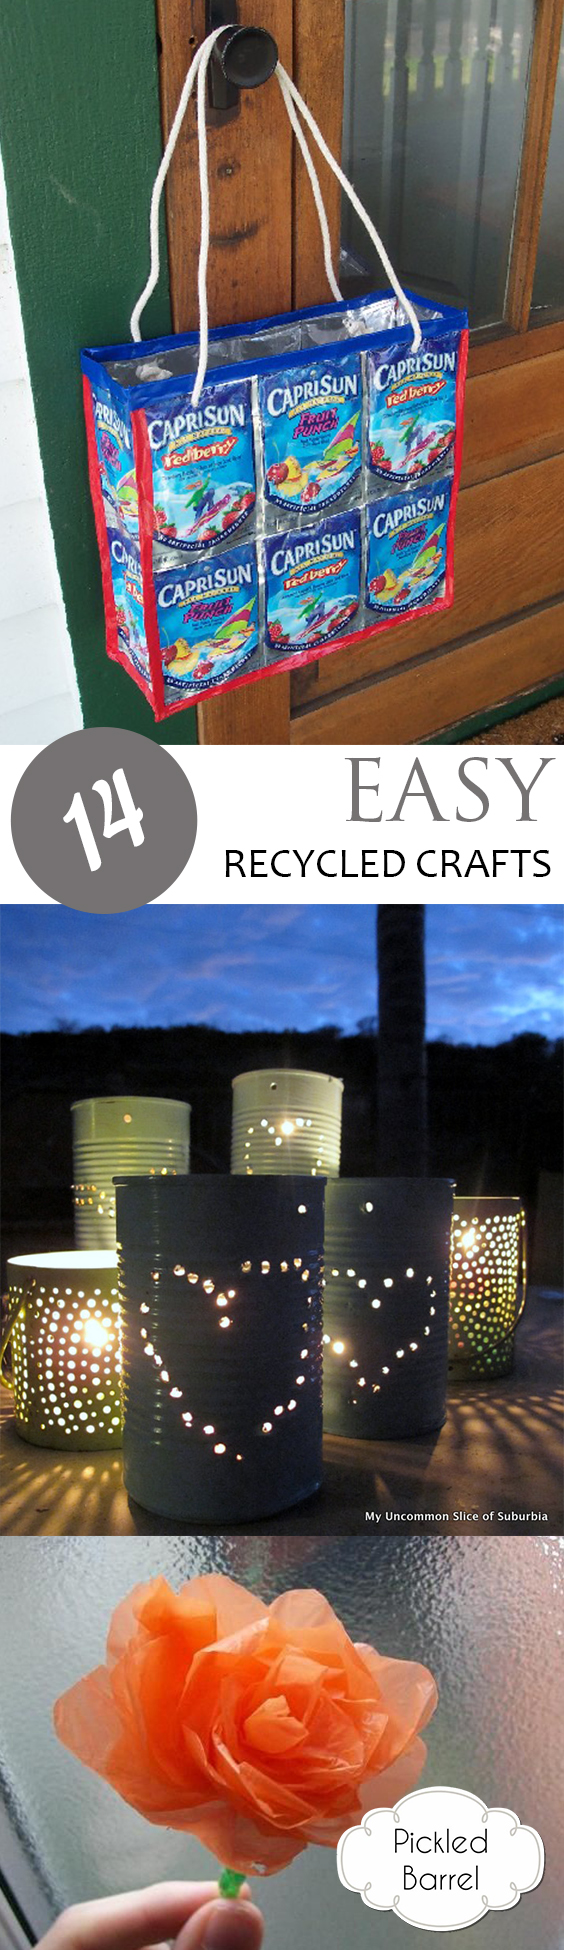 eco craft ideas 14 easy recycled crafts pickled barrel 1942